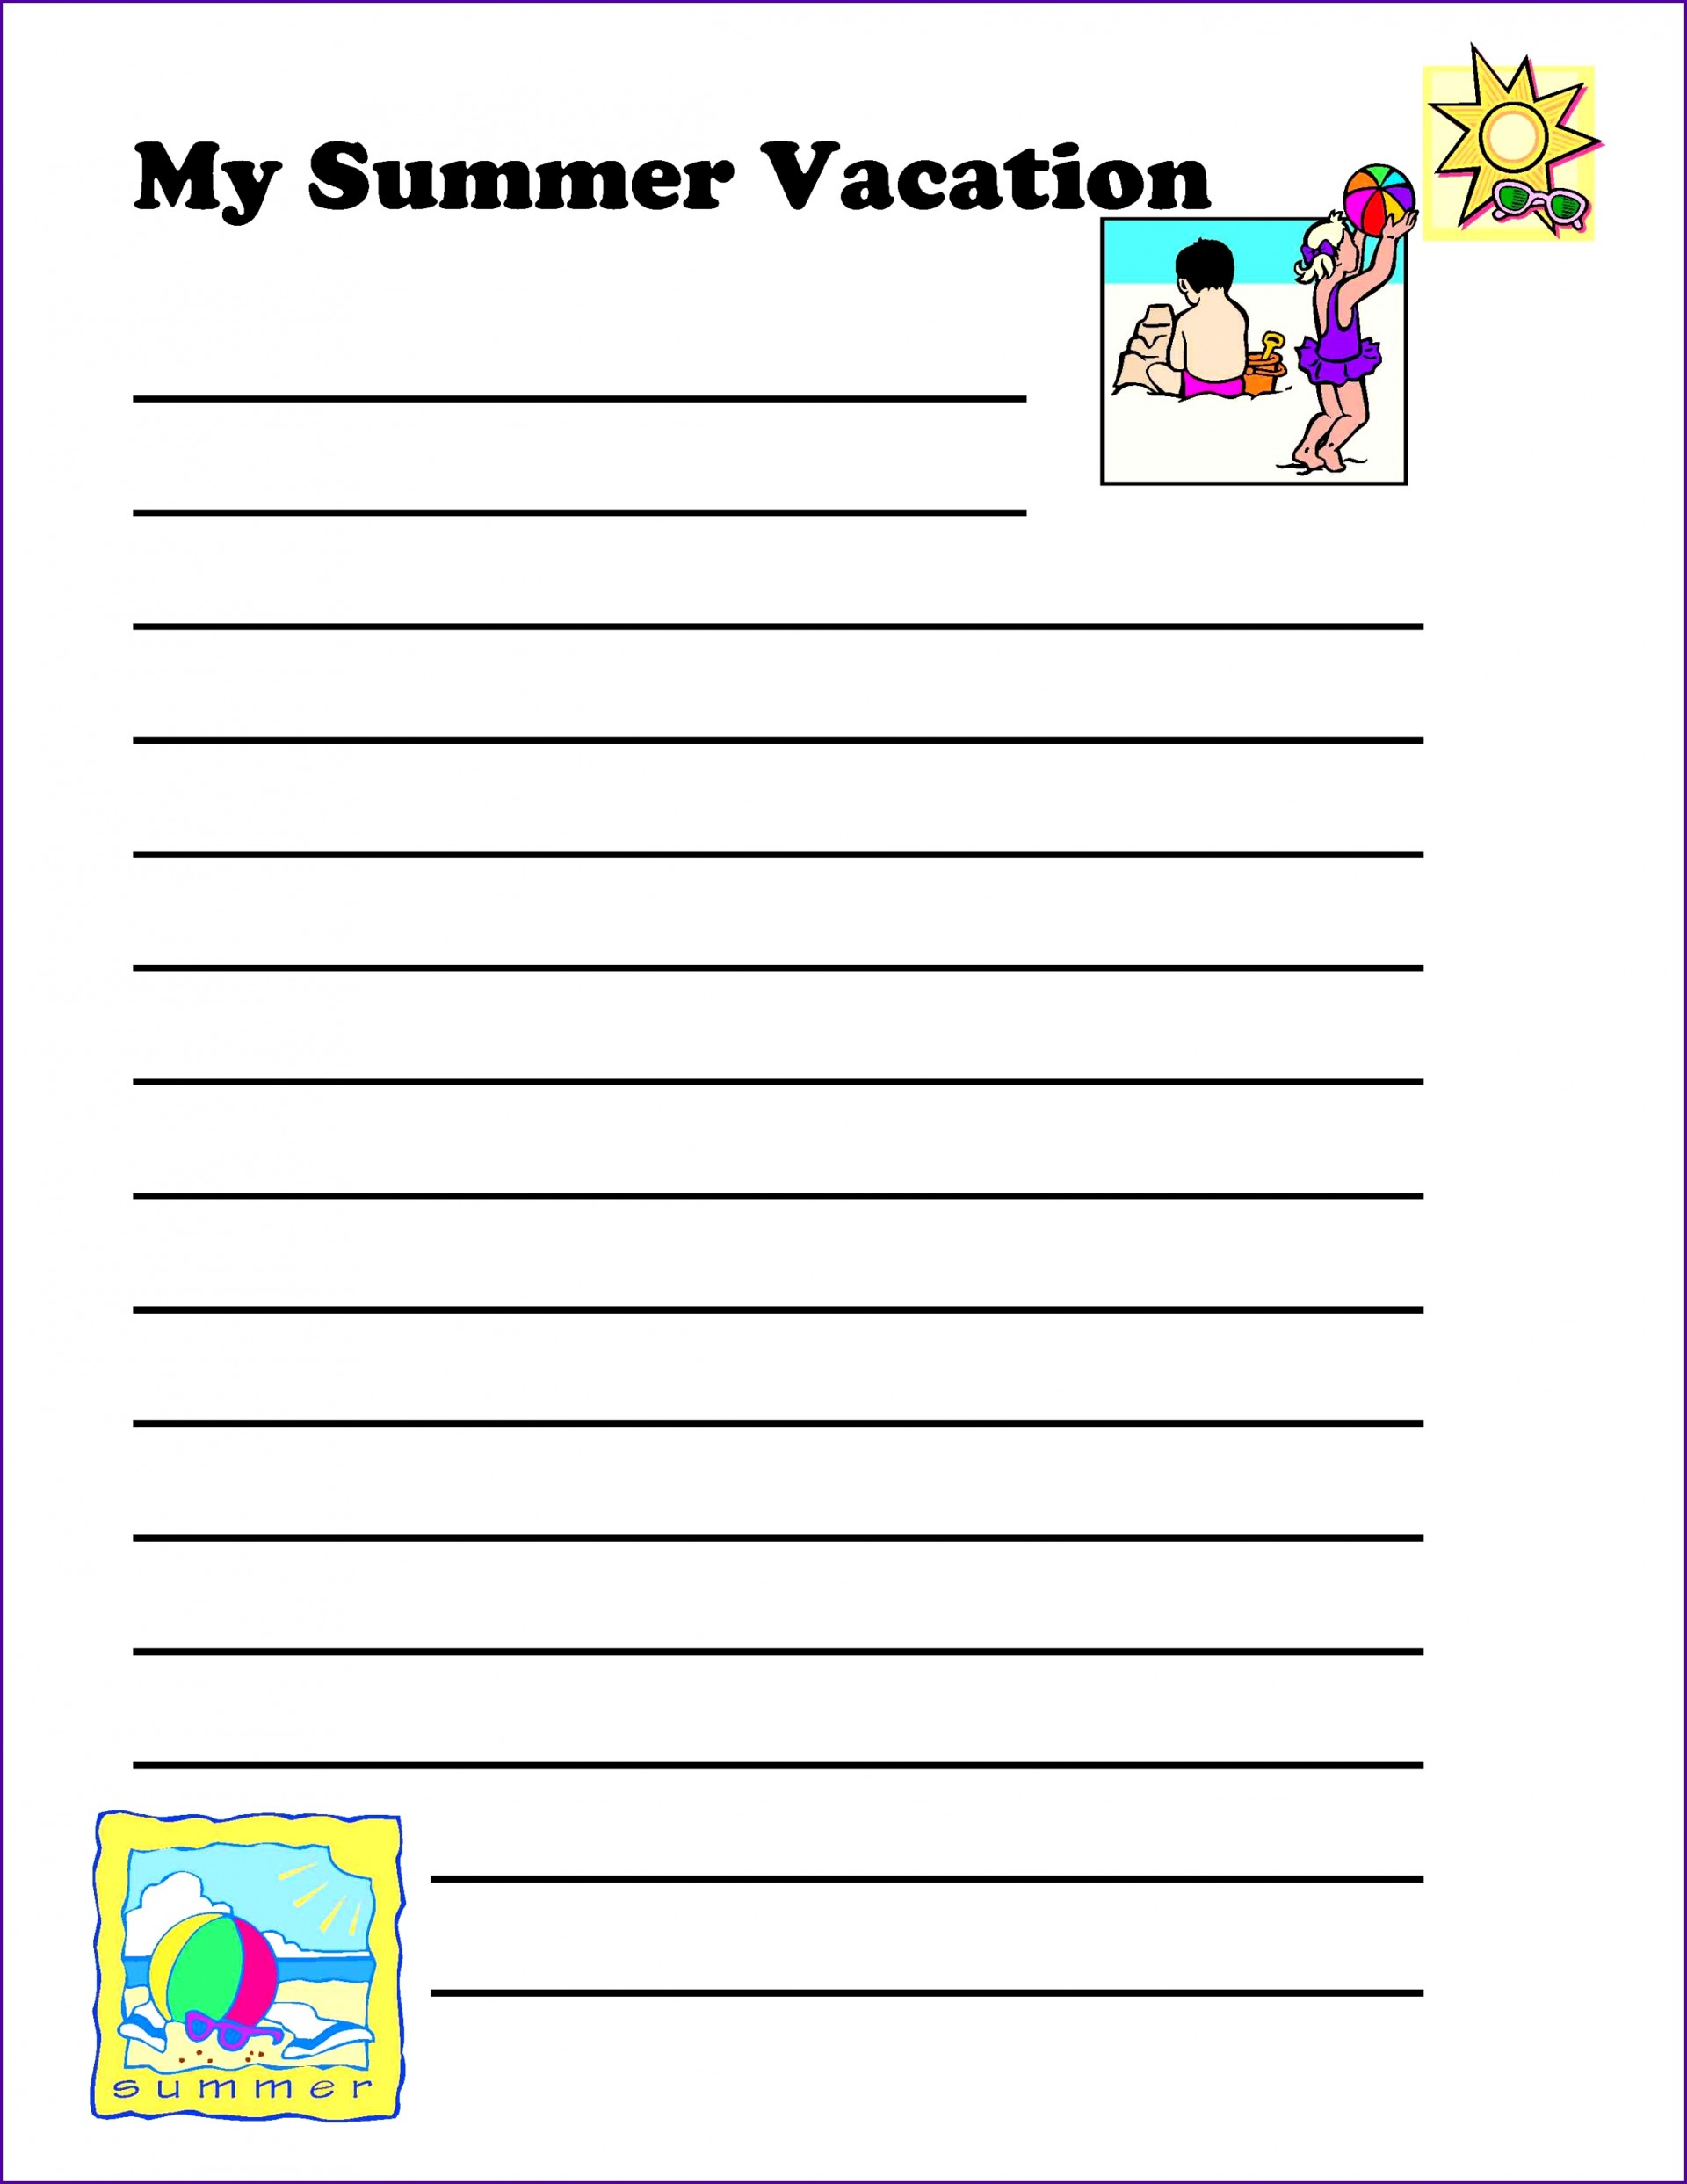 025 Summer Vacation Essay Holiday Planner Template For